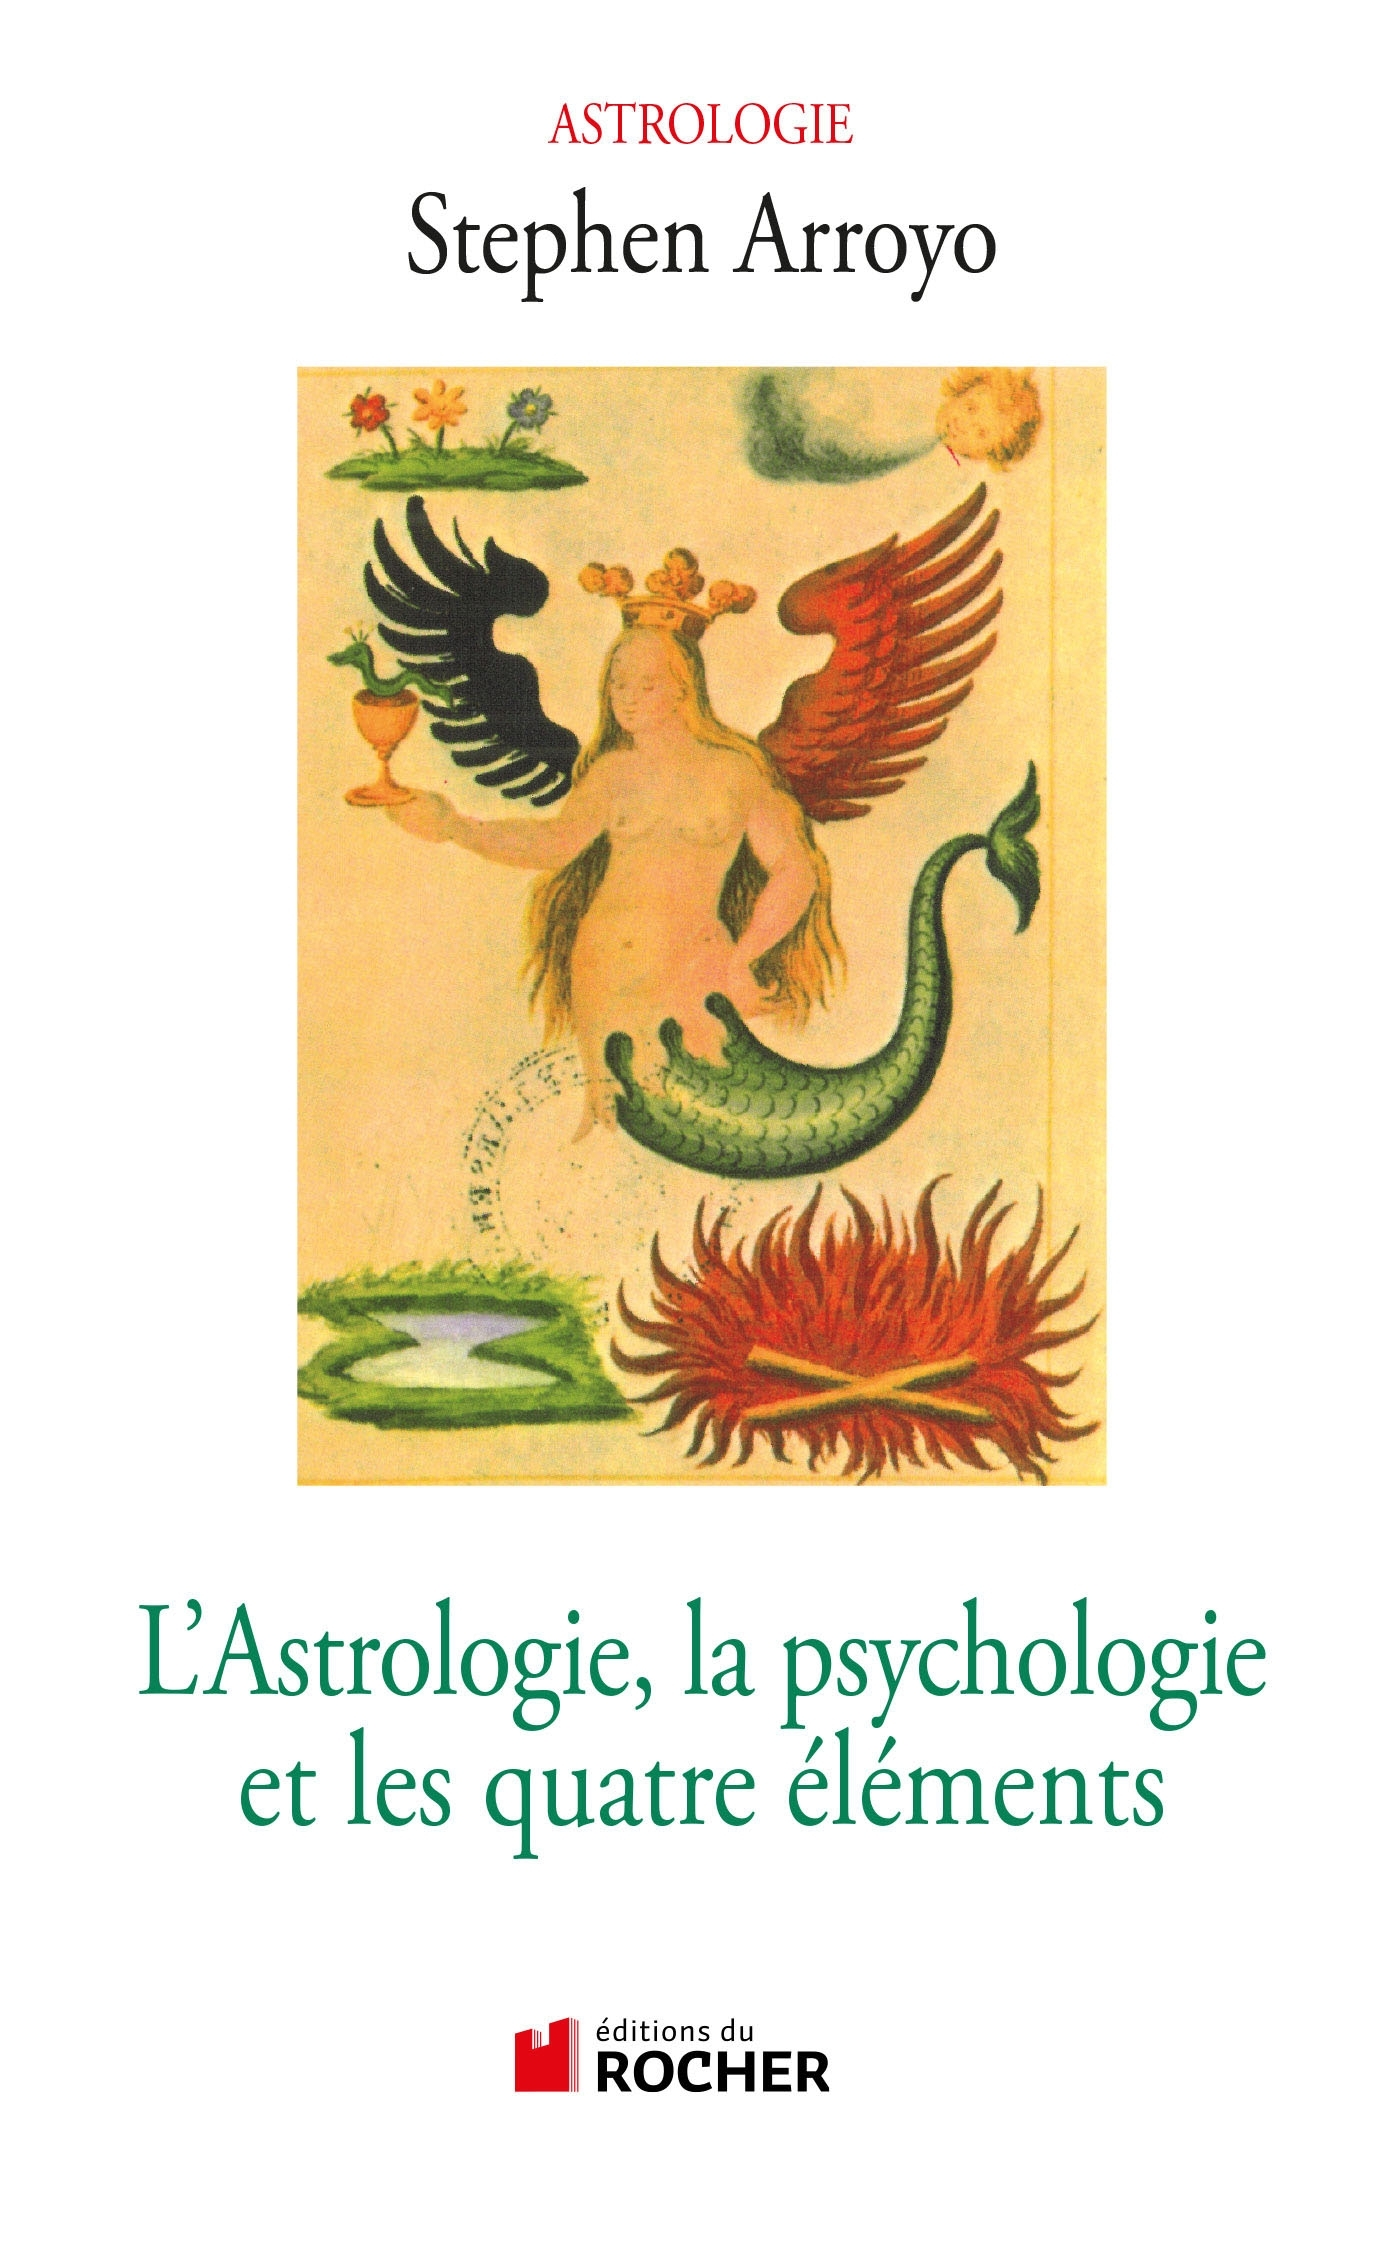 L'ASTROLOGIE, LA PSYCHOLOGIE ET LES QUATRE ELEMENTS